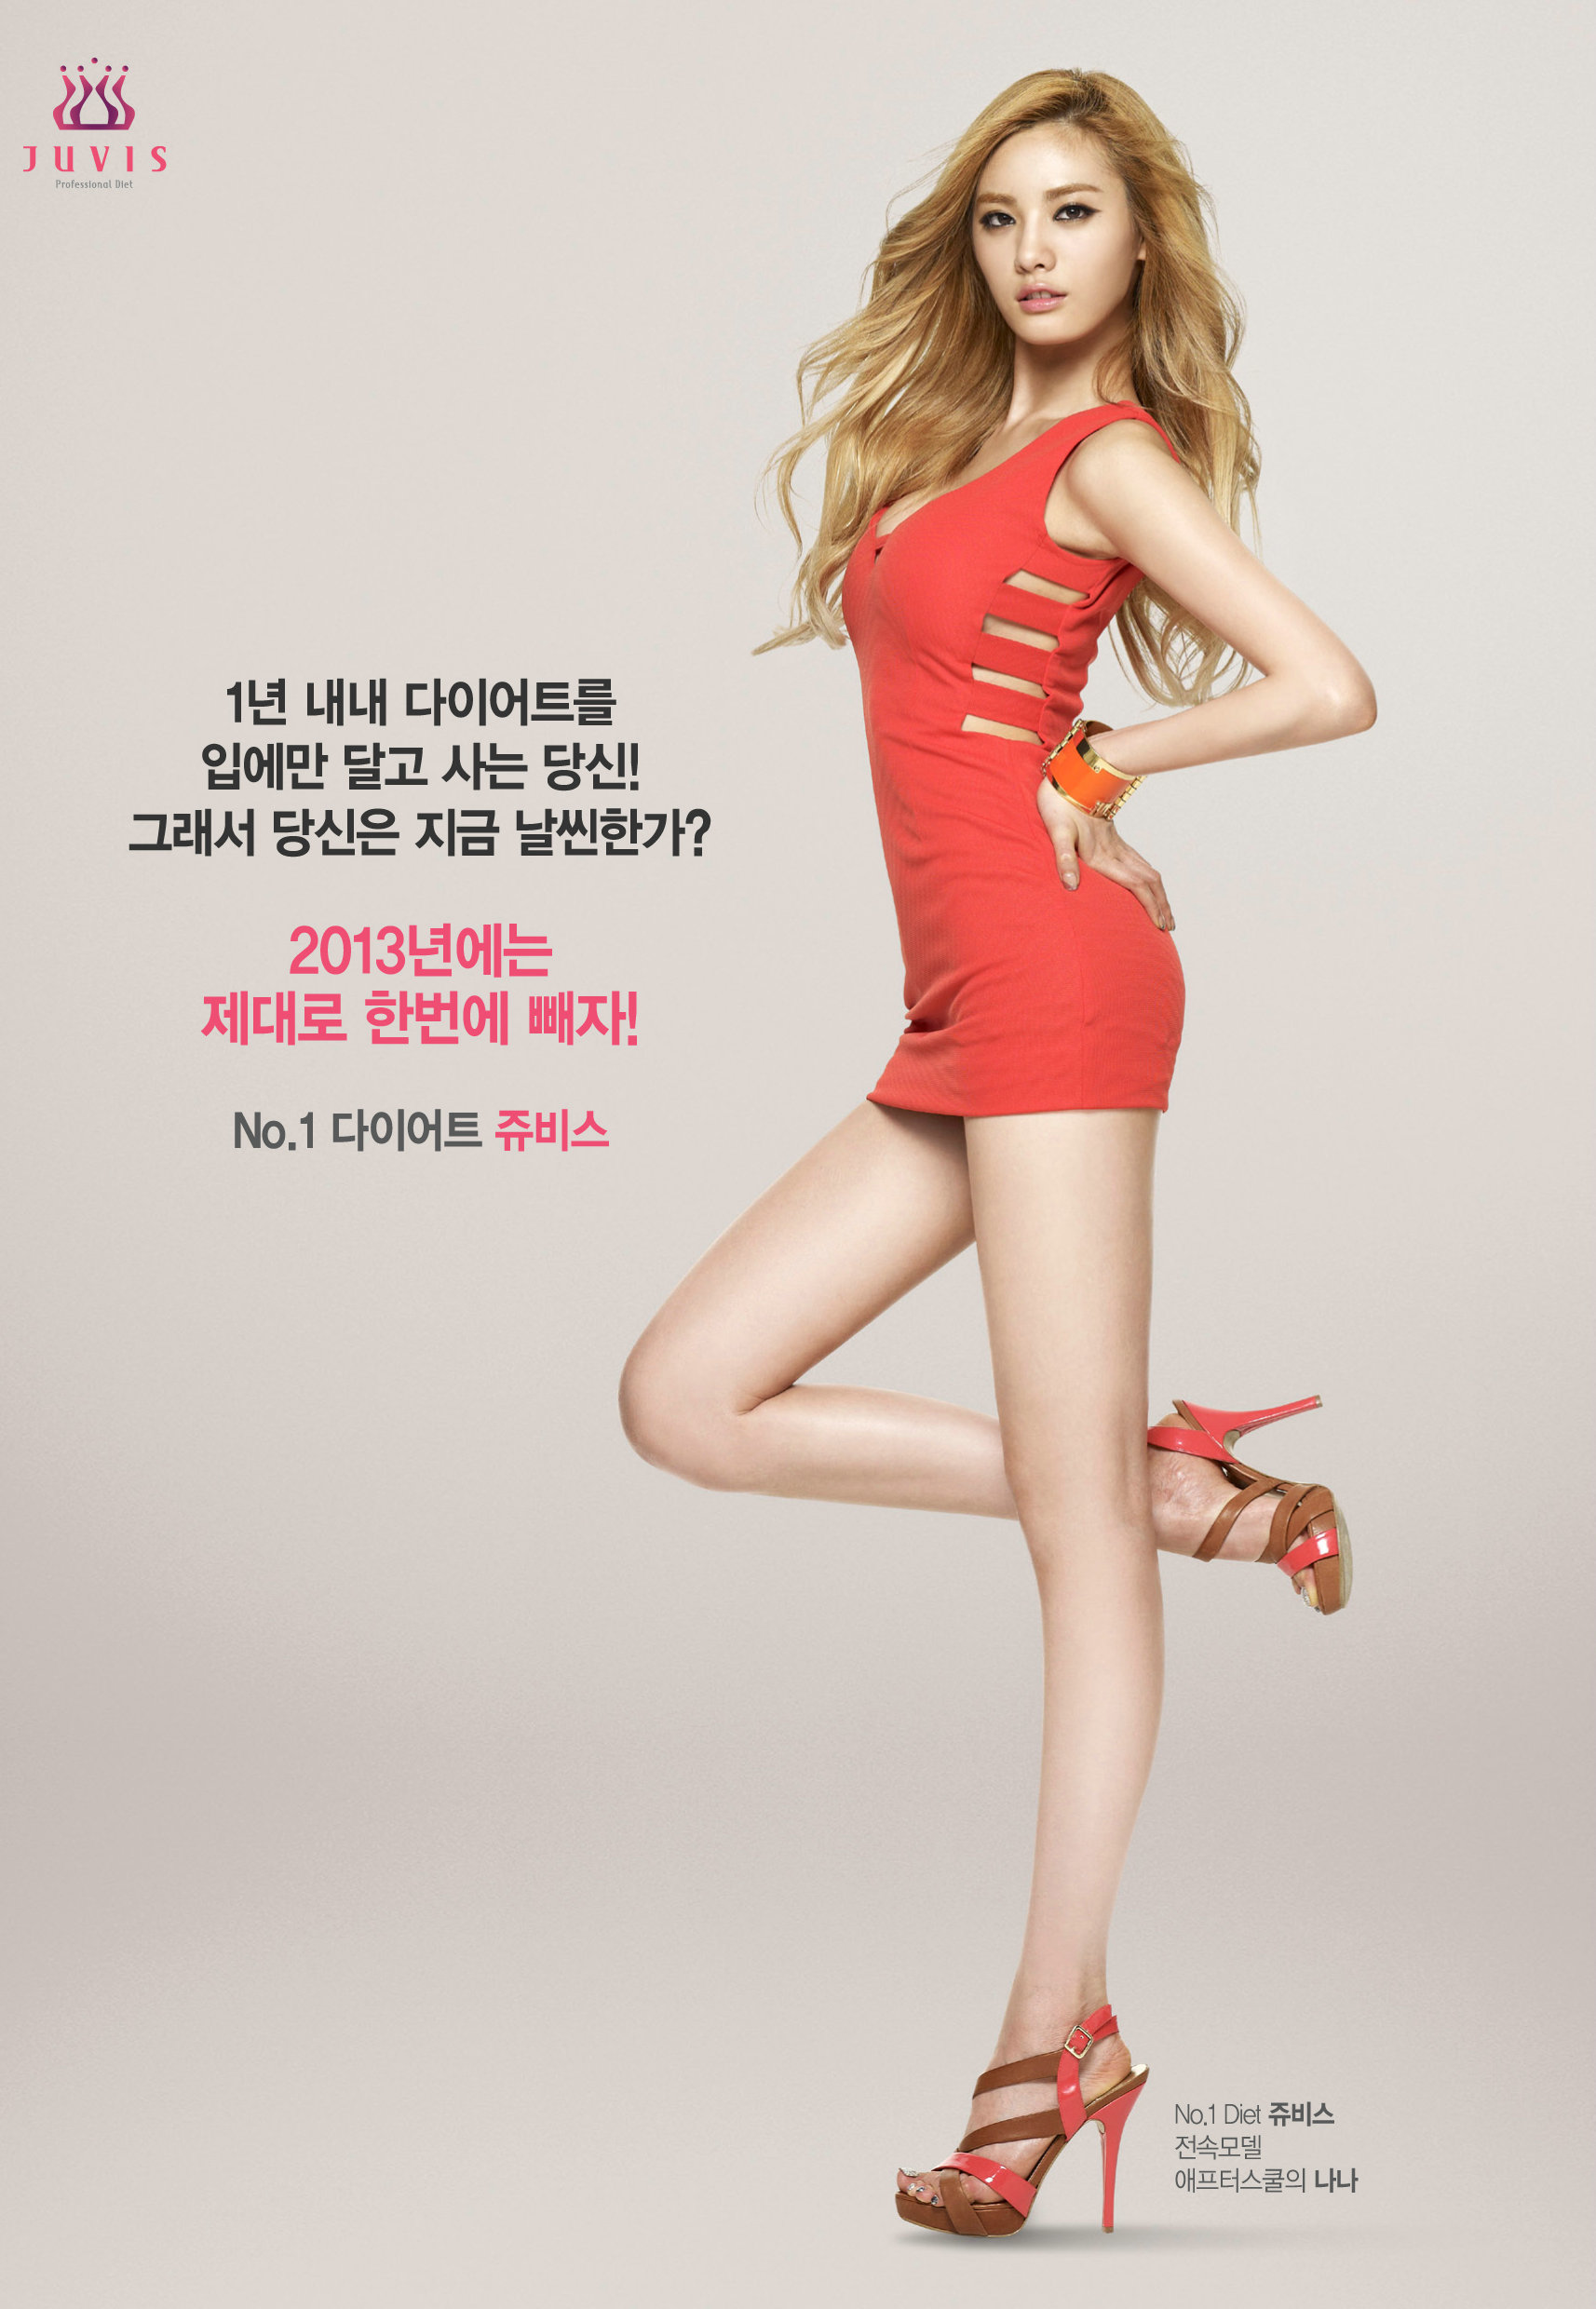 After School Nana Juvis Advertisement